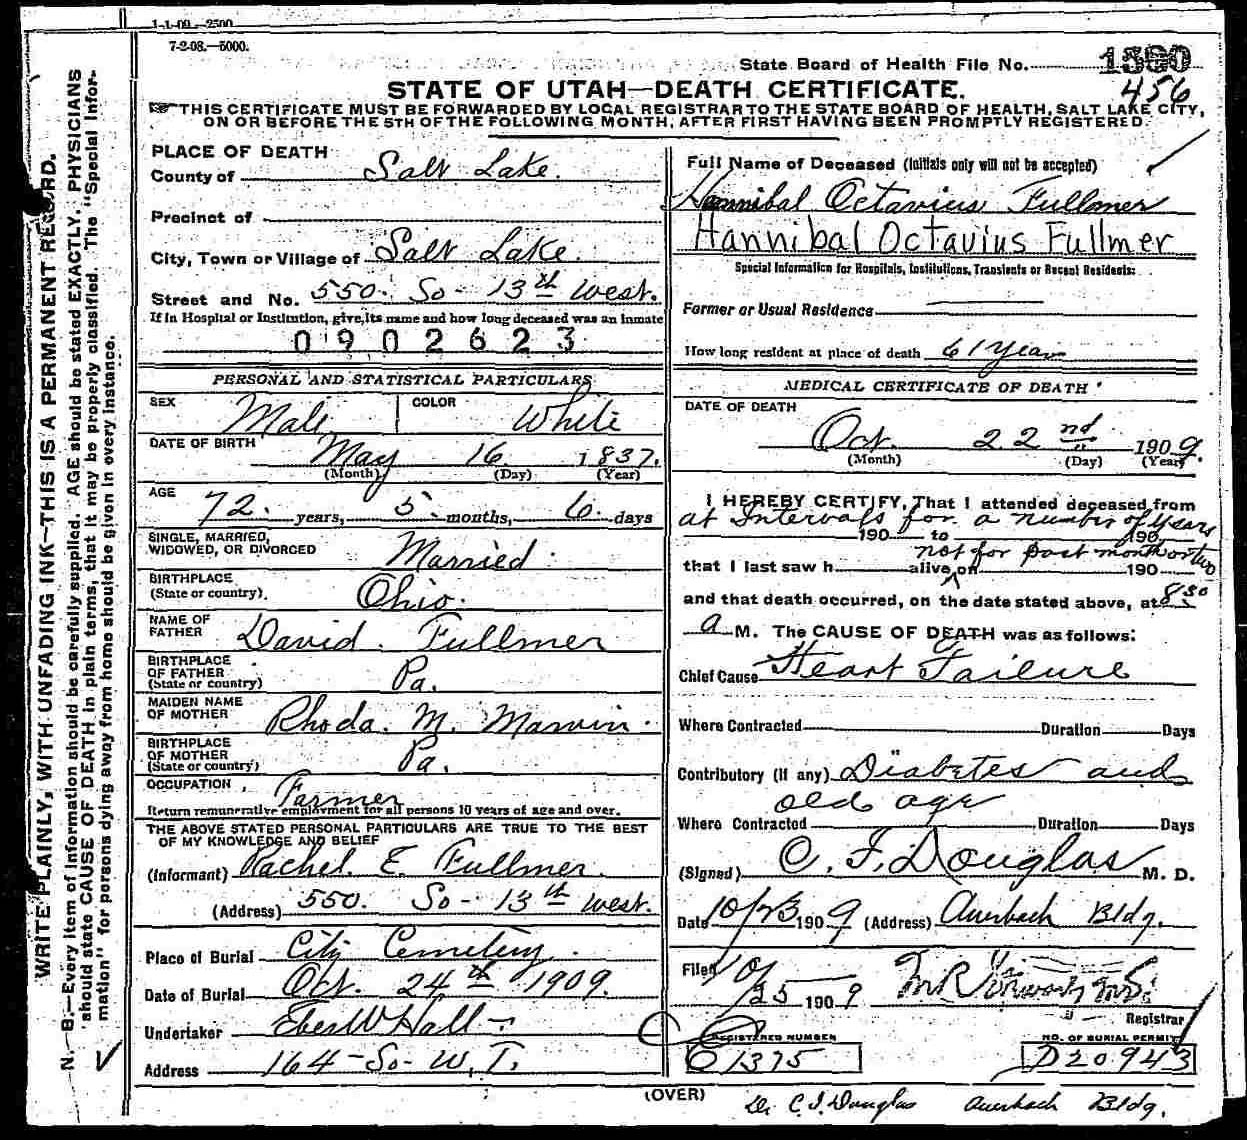 Documents Hannibal Octavias Fullmer 1837 1909 Death Certificate